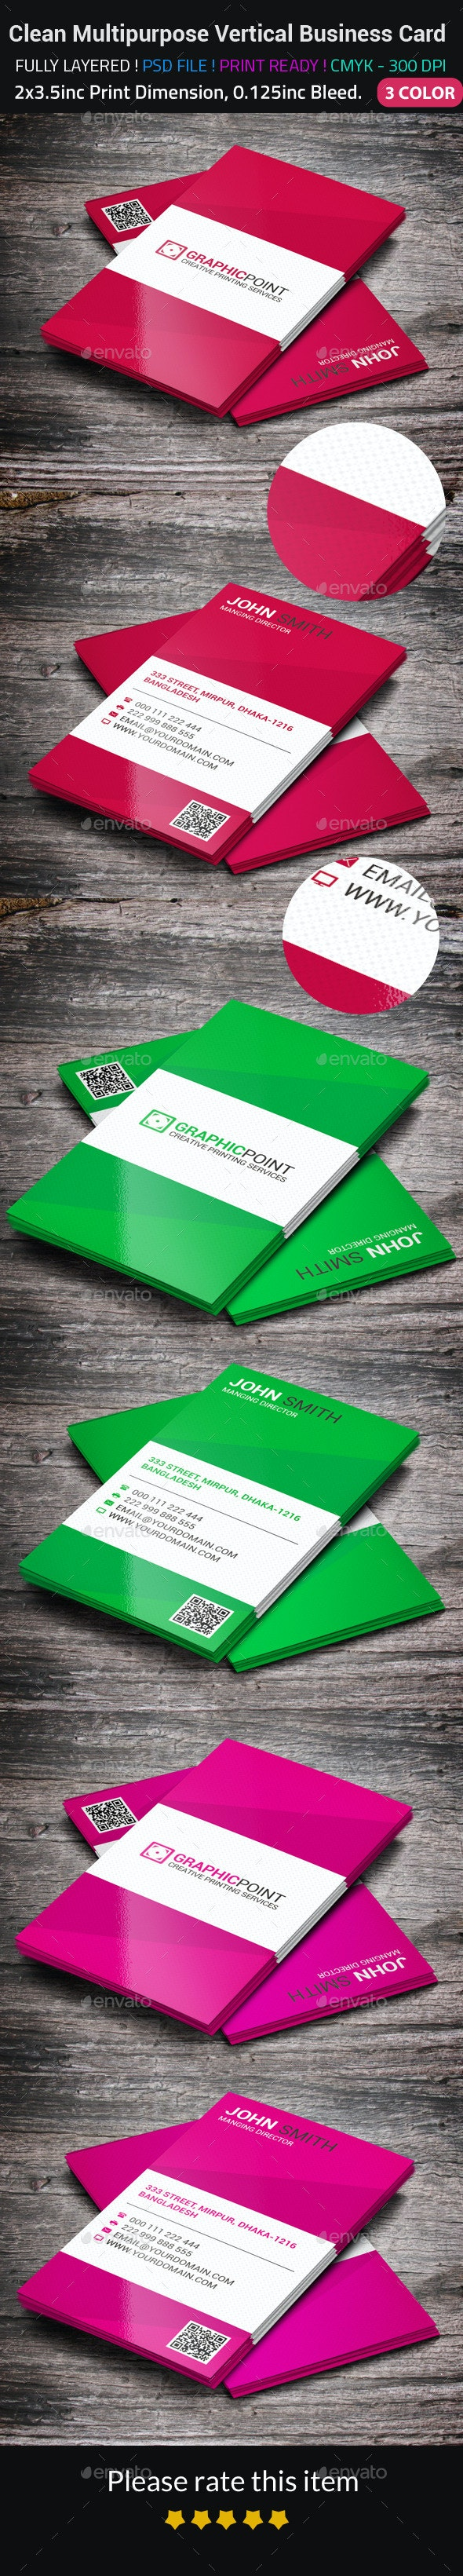 Clean Multipurpose Vertical Business Card - Corporate Business Cards